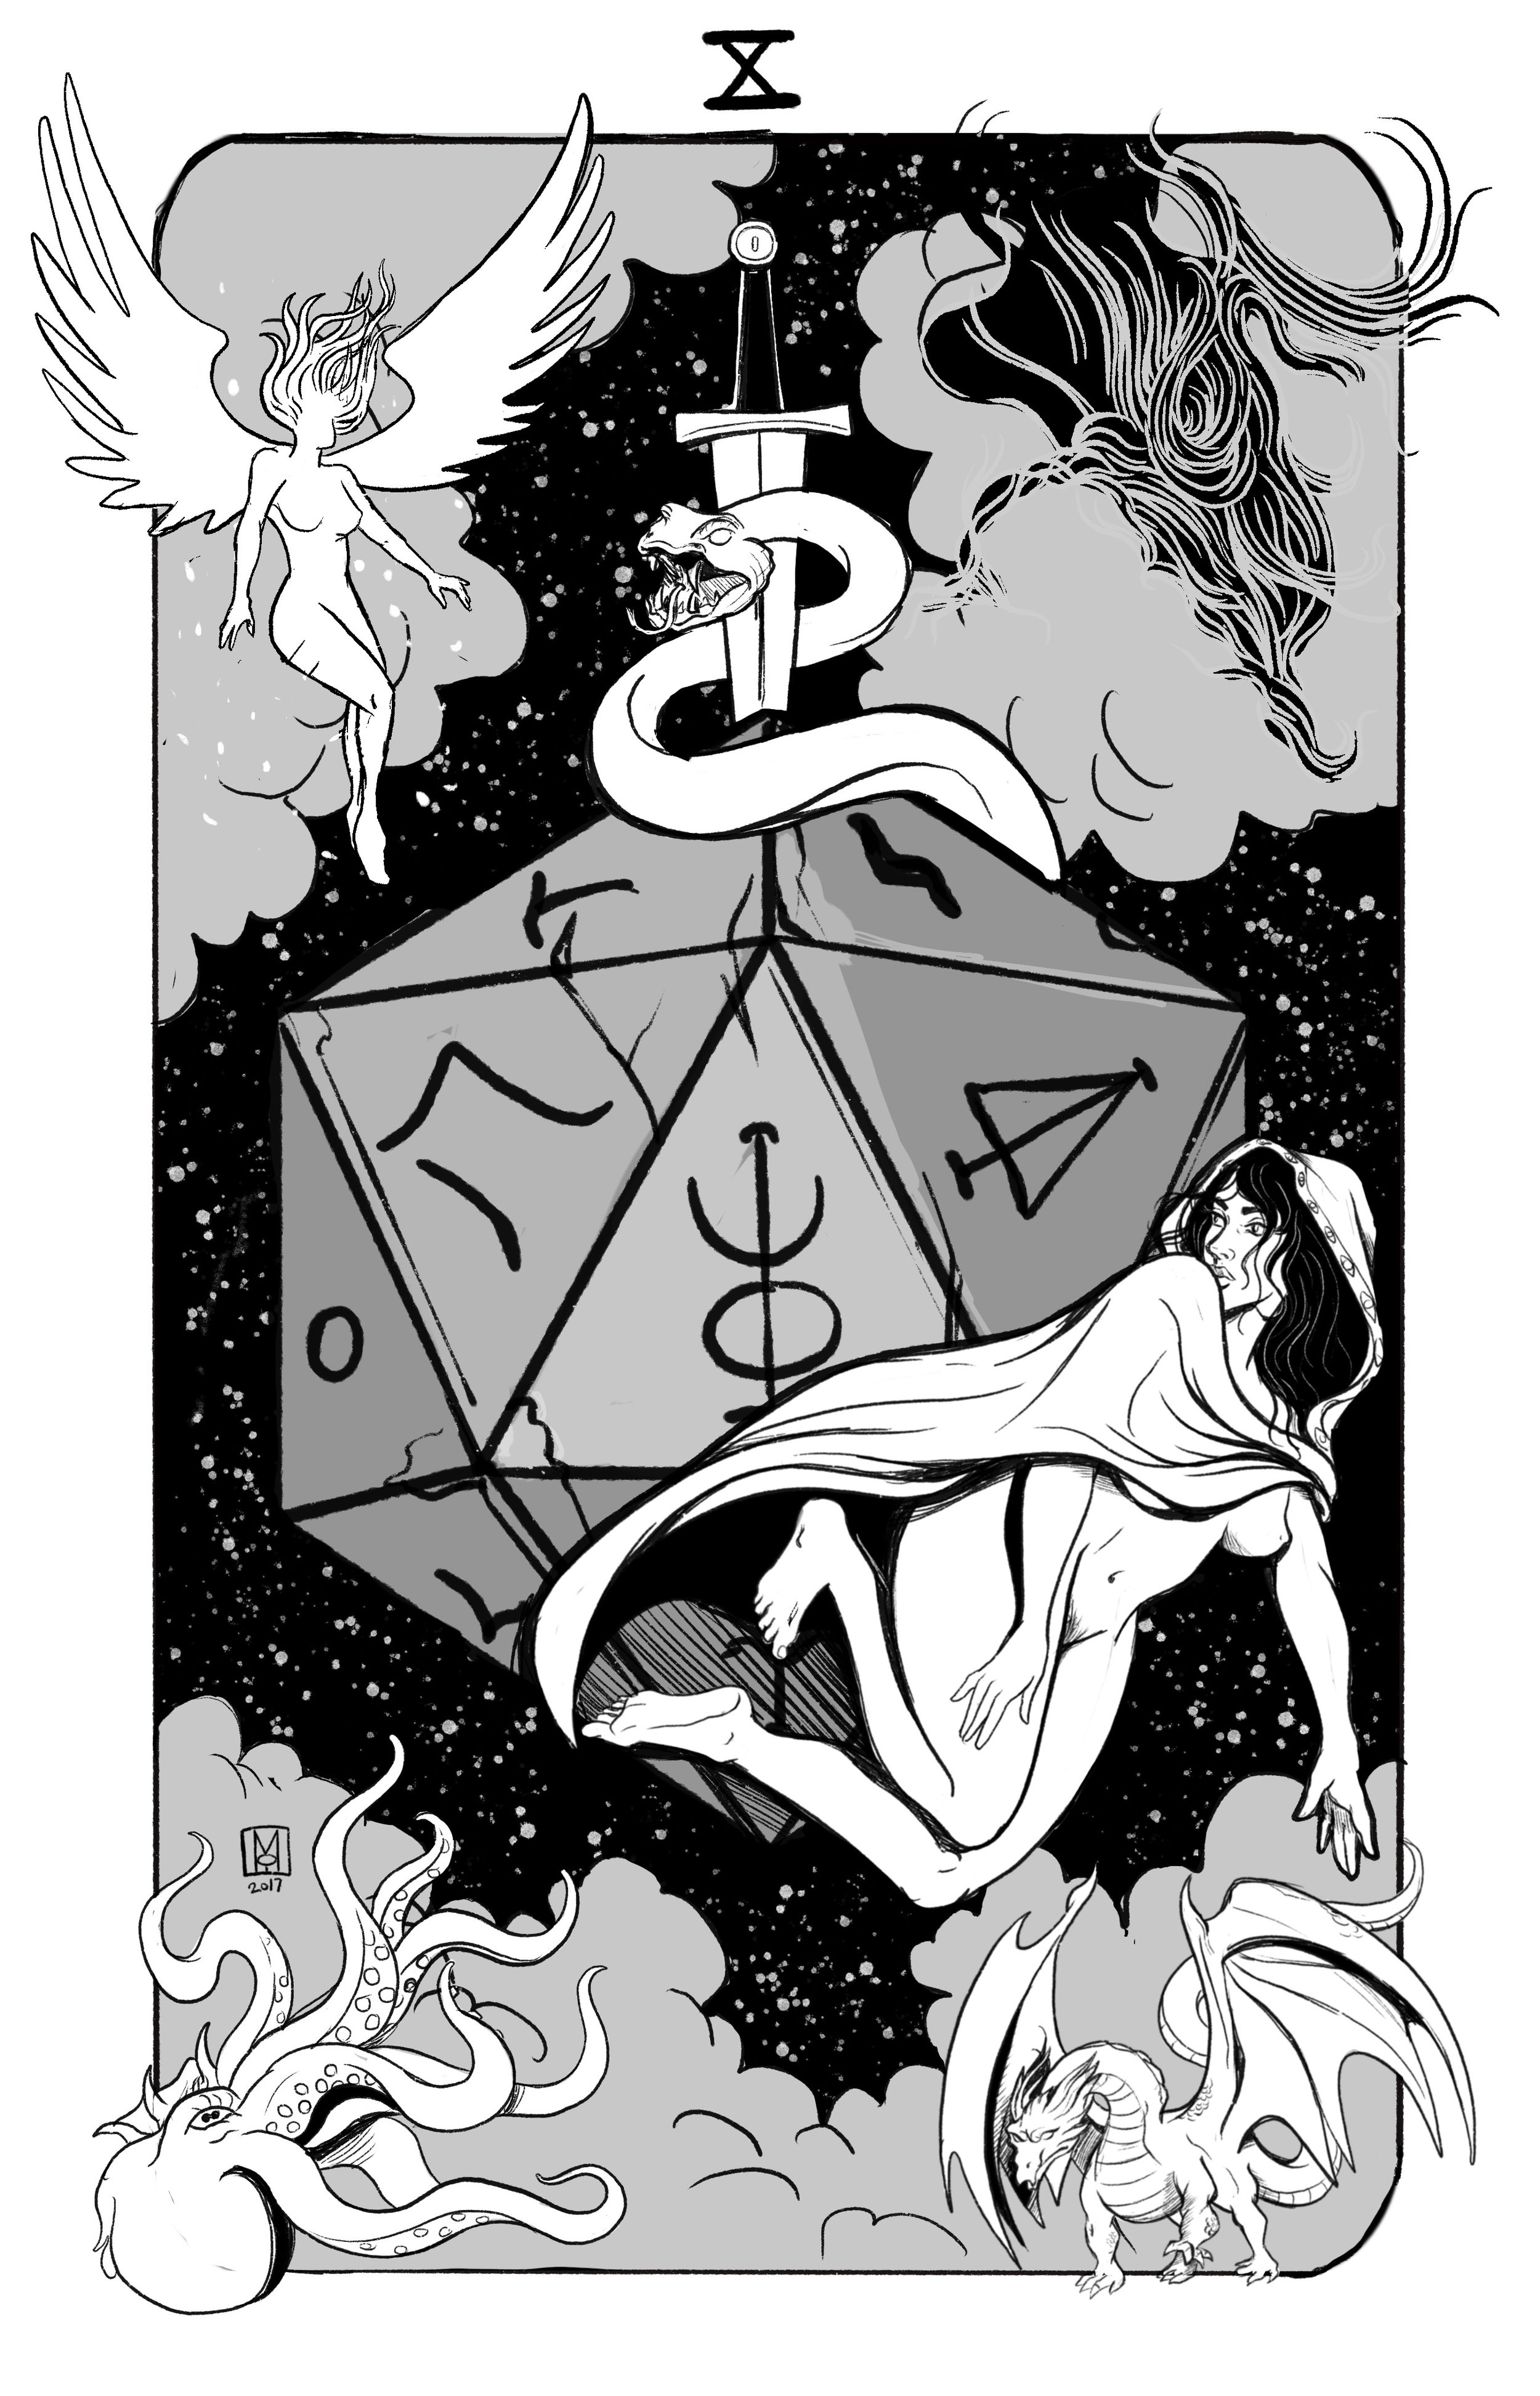 Major Arcana X: Wheel of Fortune